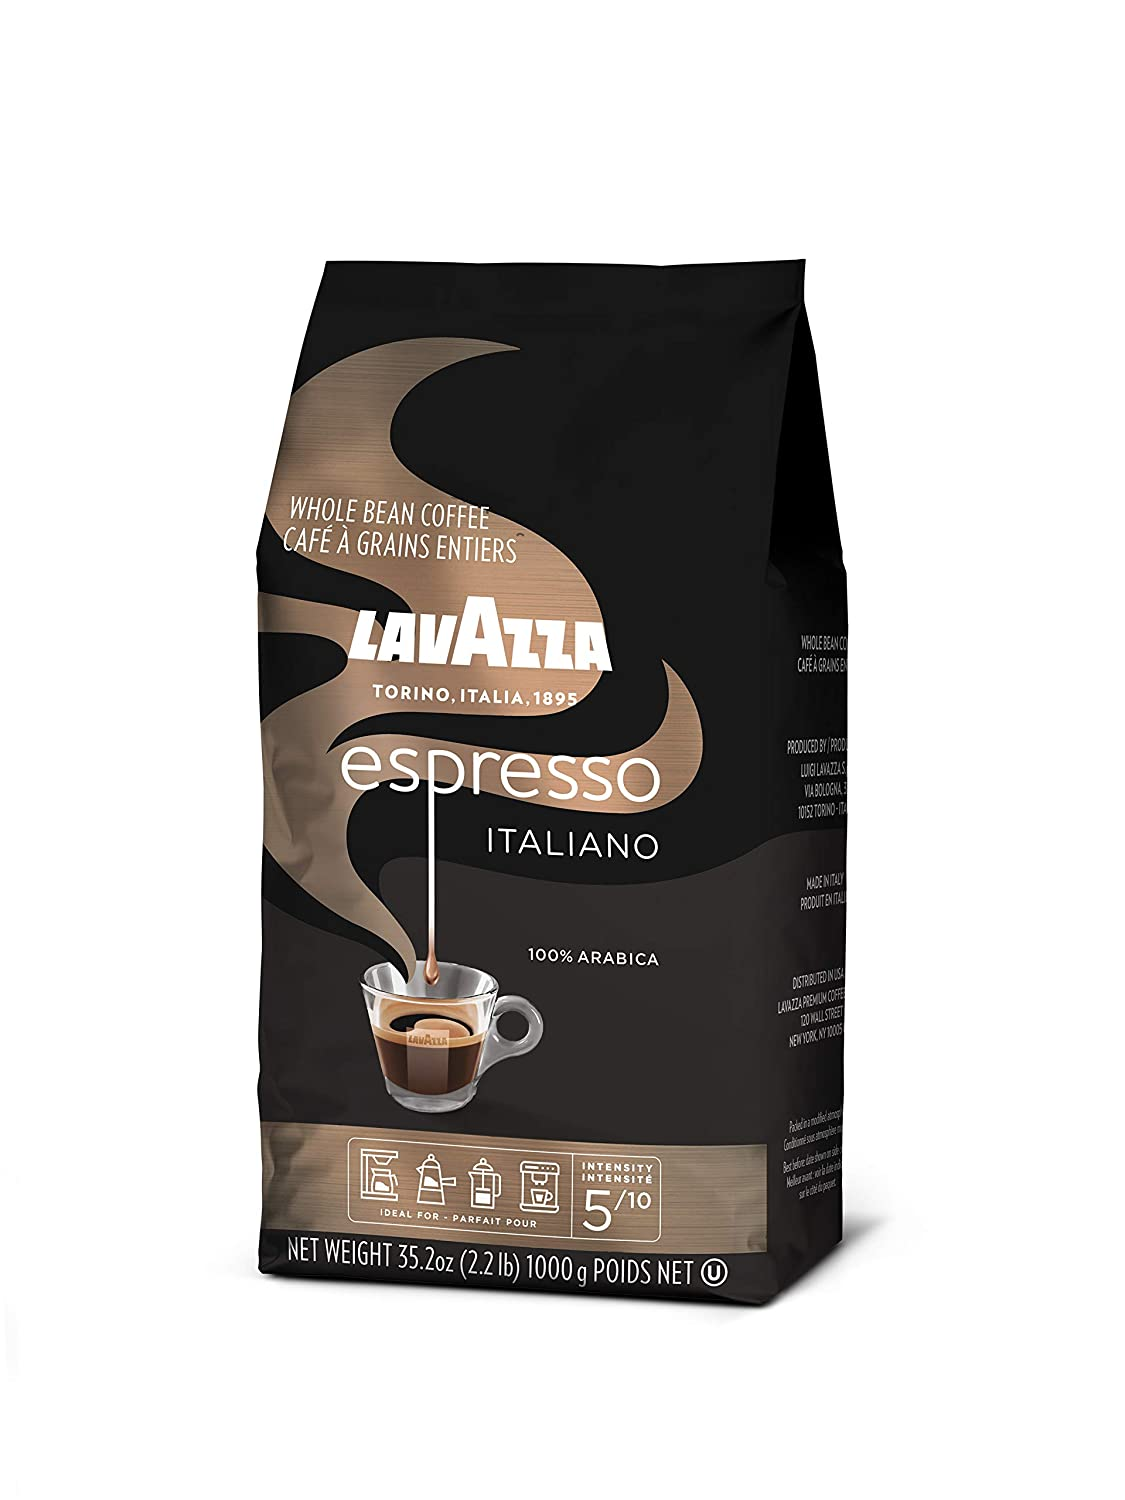 Lavazza Espresso Italiano Whole Bean Coffee Blend Medium Roast 2 2 Pound Bag Packaging May Vary Amazon Com Grocery Gourmet Food